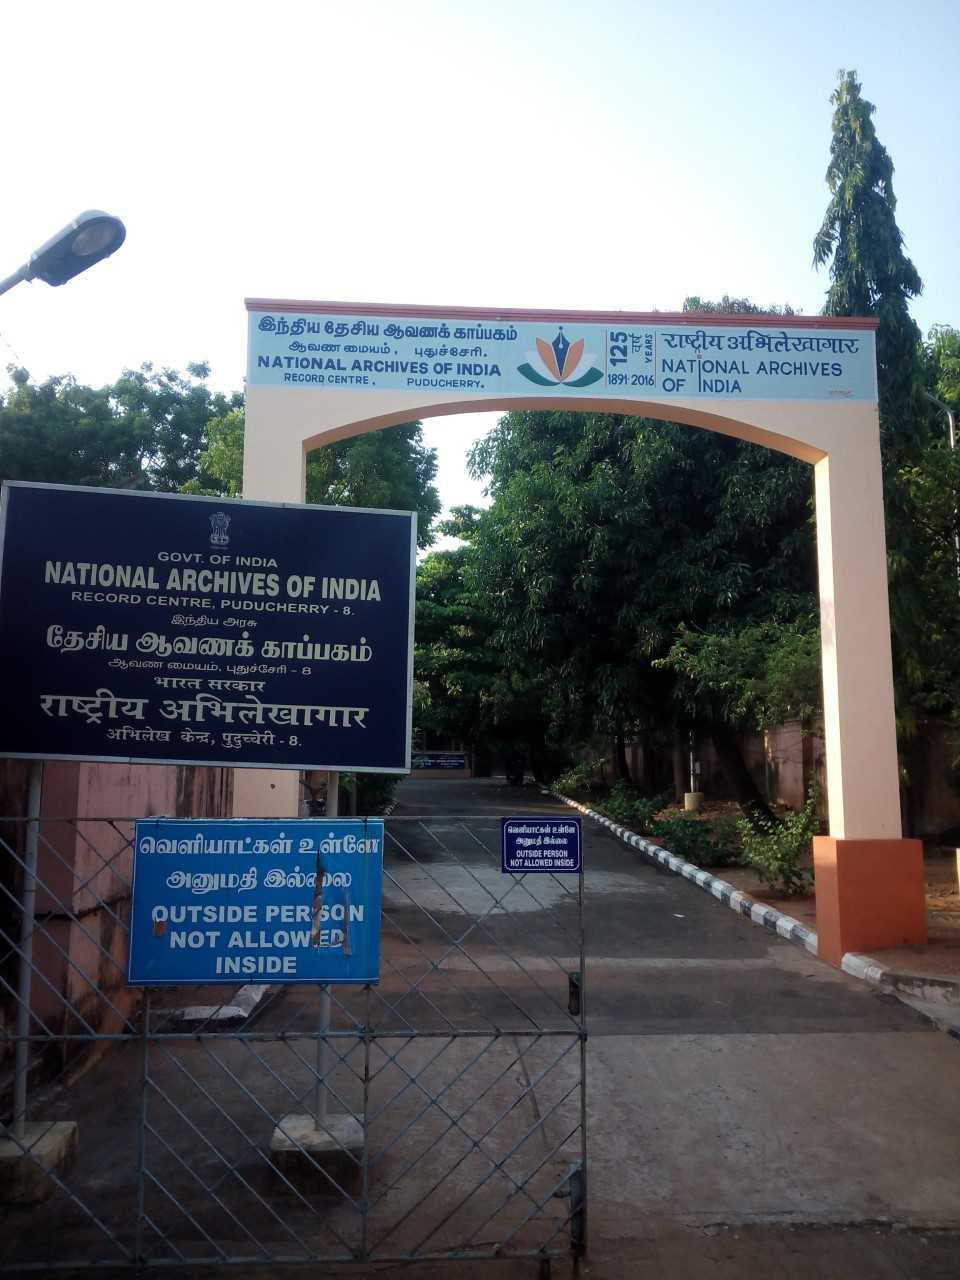 Feature archive the national archives of india records centre pondicherry is a popular tourist destination and researchers should not have a problem finding a place to stay there are a number of guesthouses connected thecheapjerseys Gallery